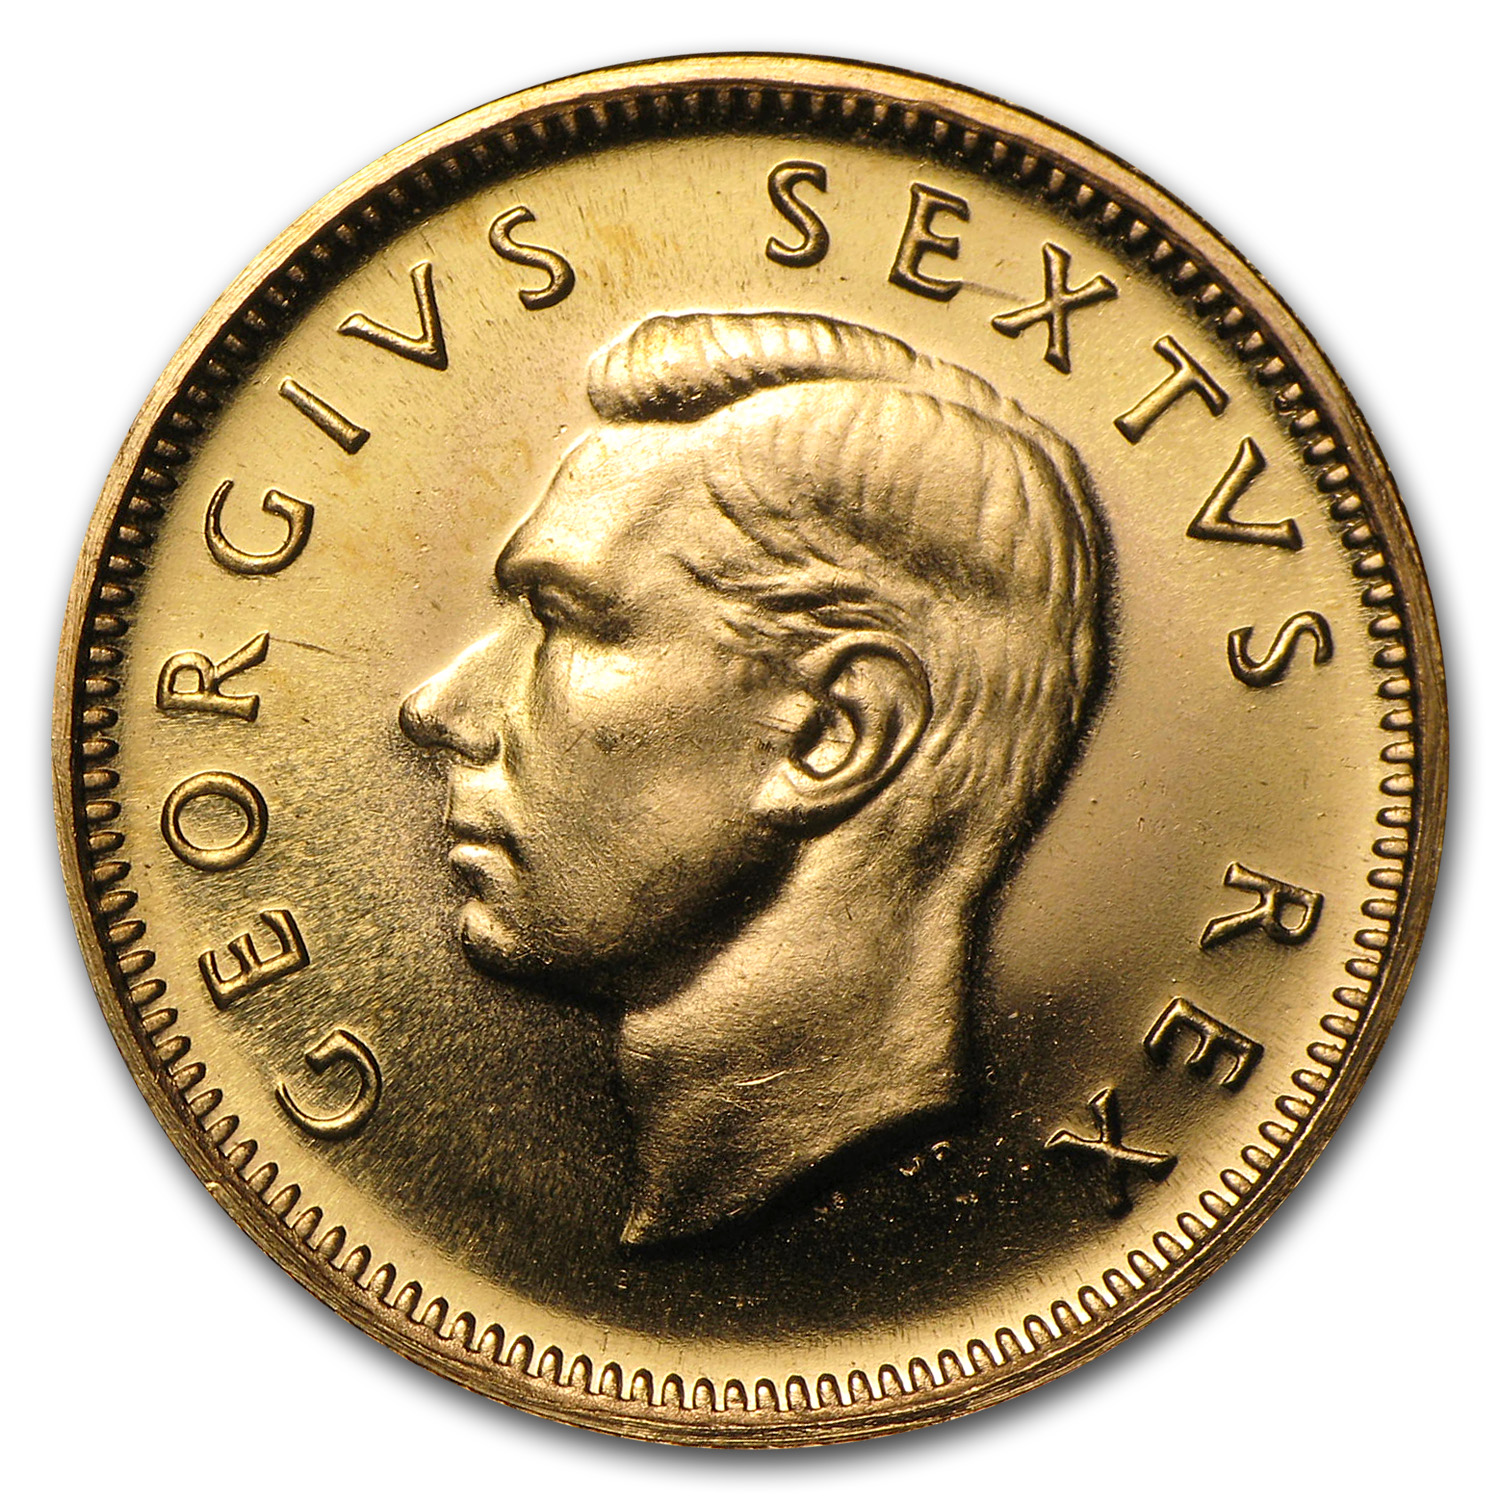 1952 South Africa Gold 1/2 Pound George VI BU/Proof